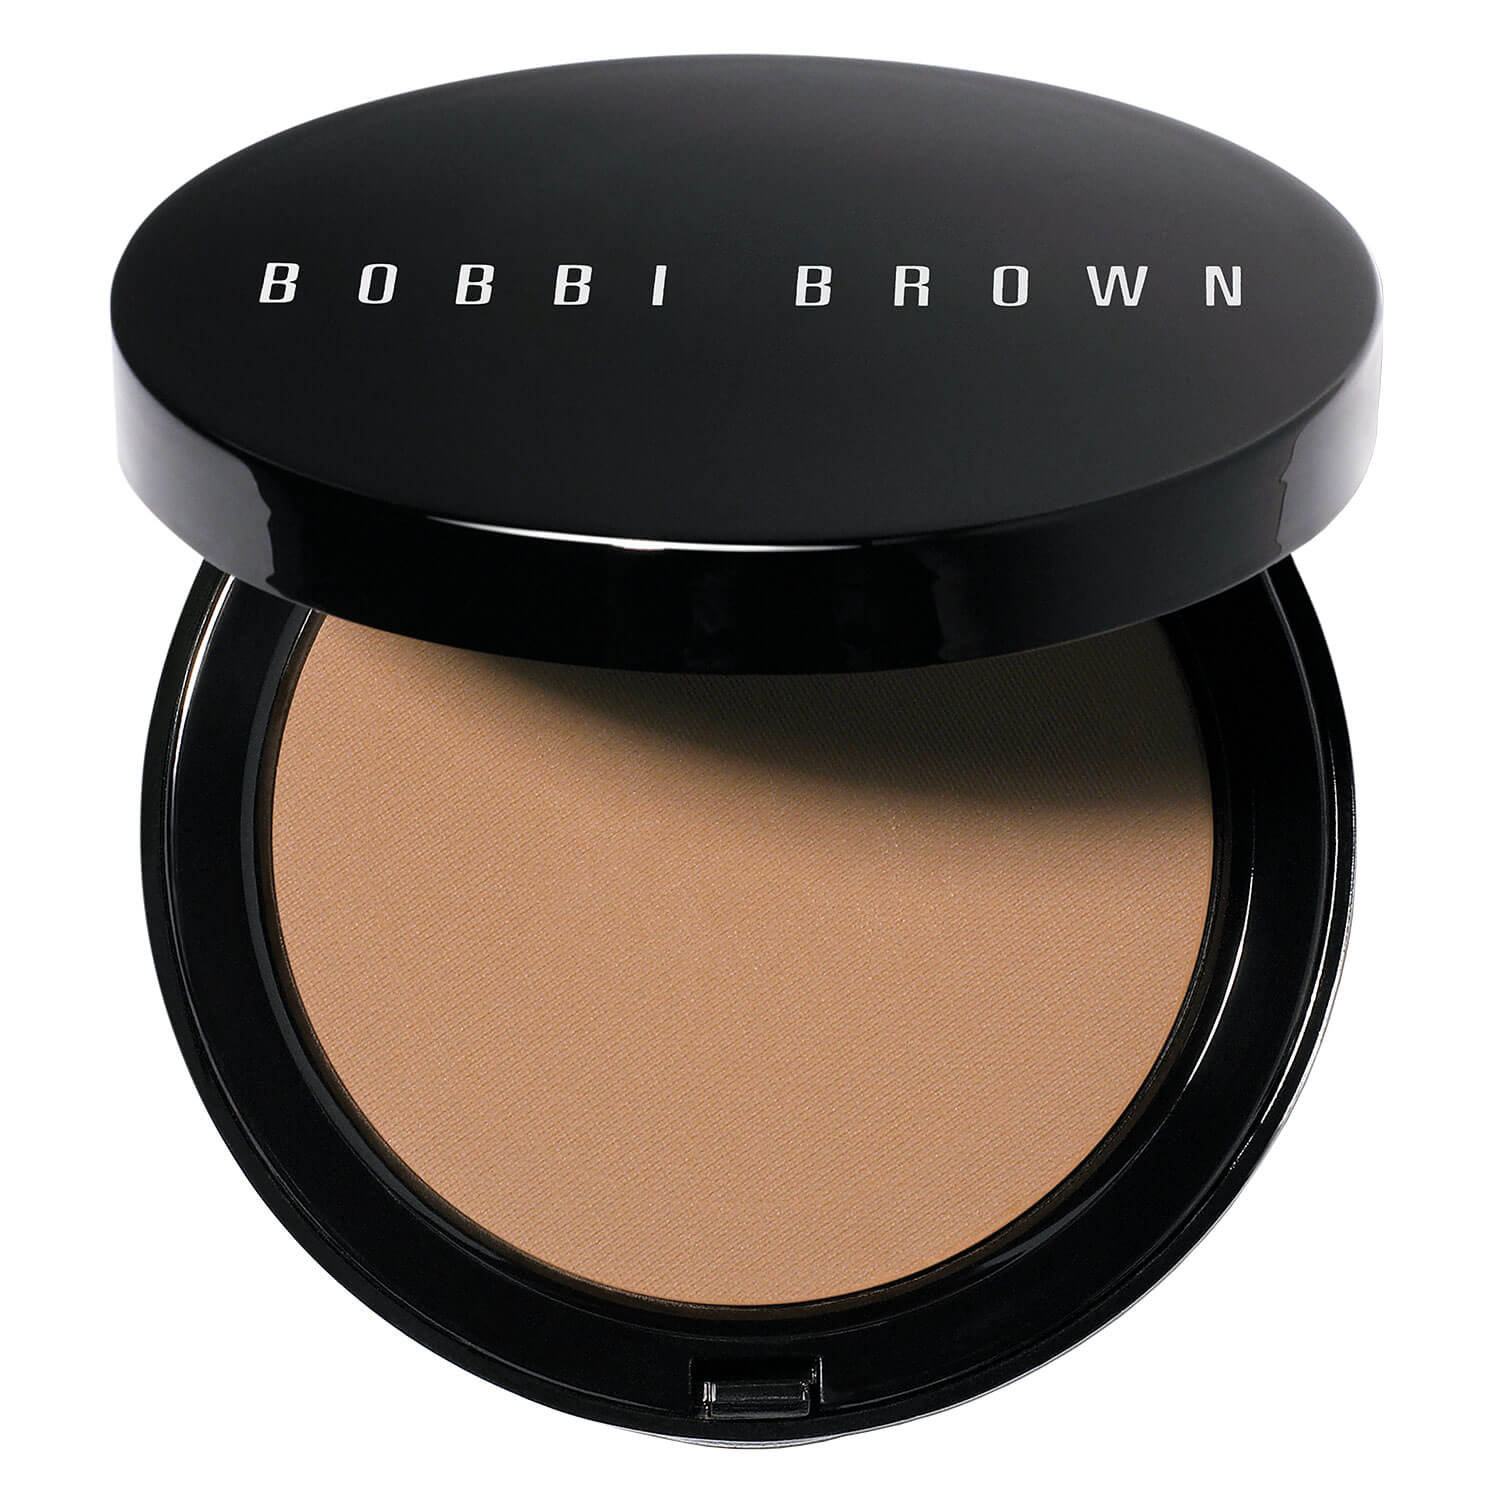 BB Bronzer - Bronzing Powder Golden Light